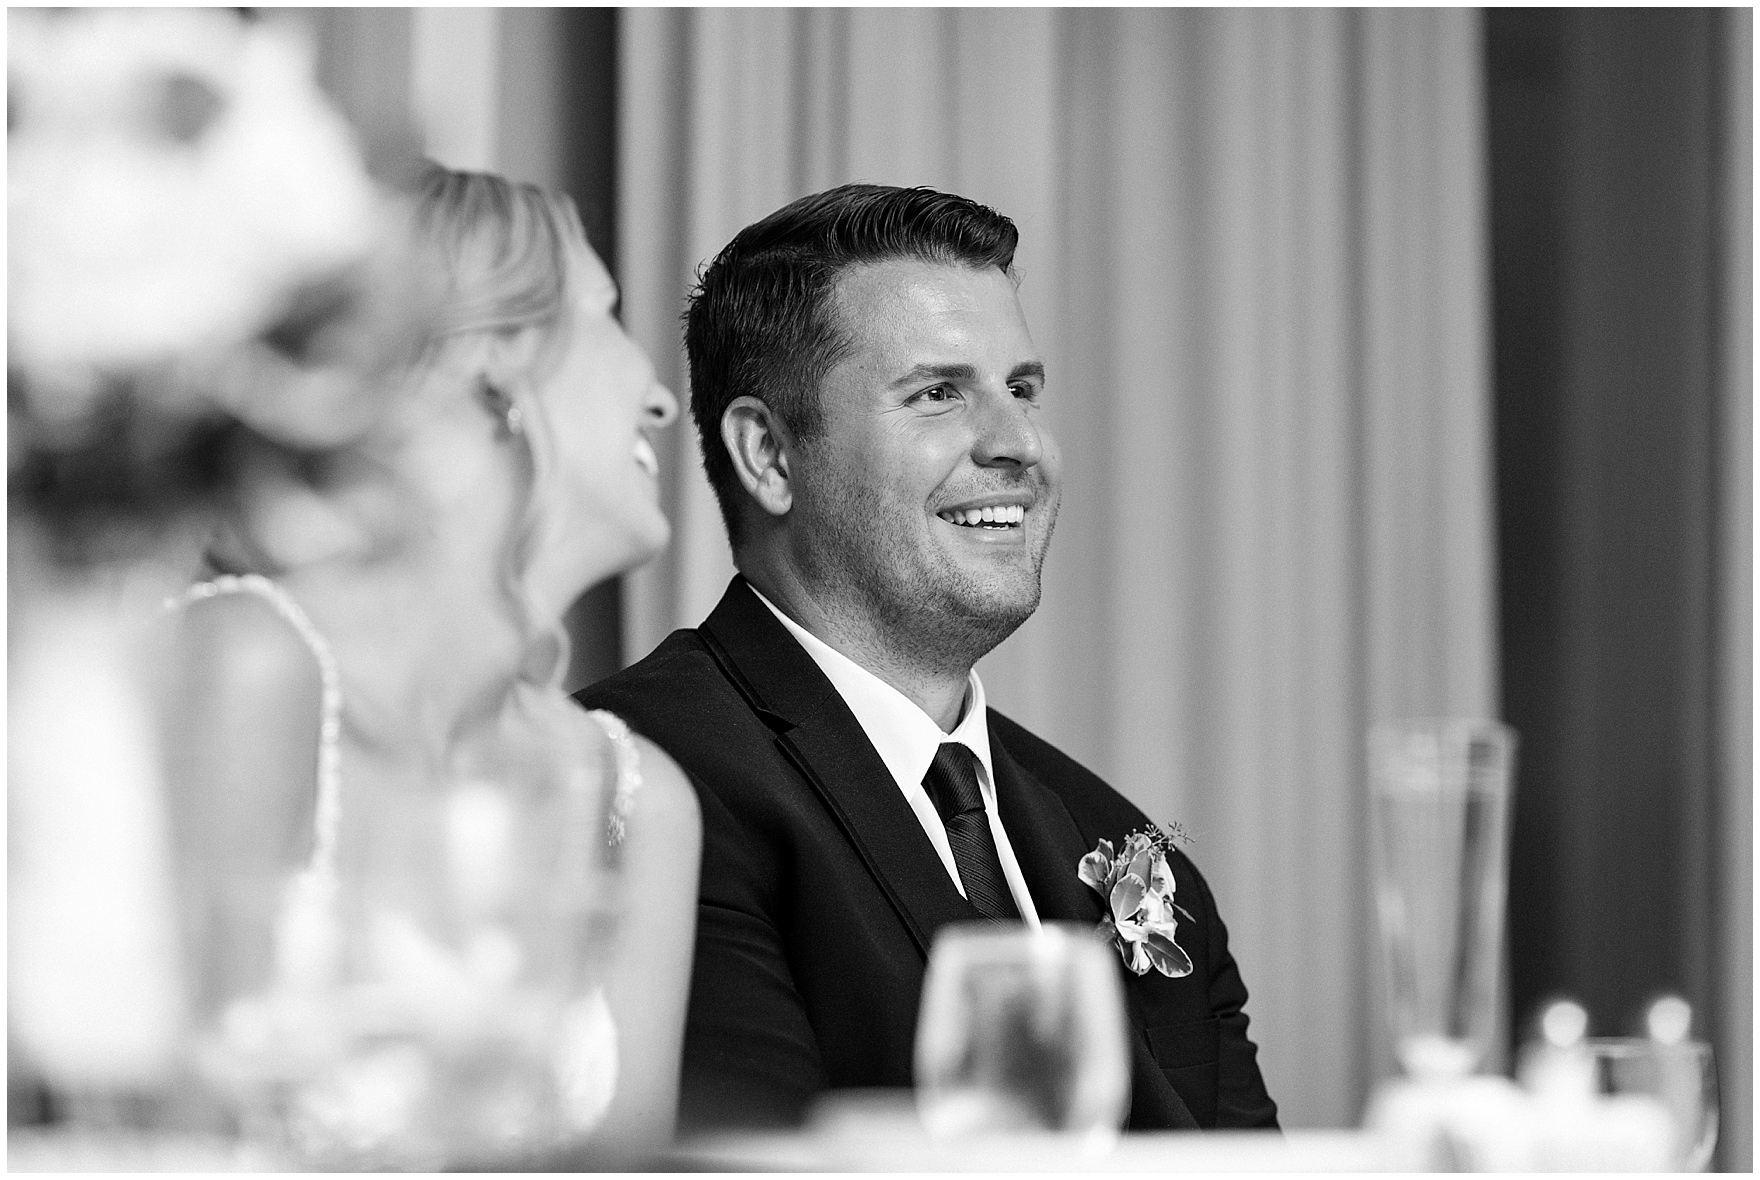 The groom listens to the best man's toast at an Itasca Country Club Illinois wedding.